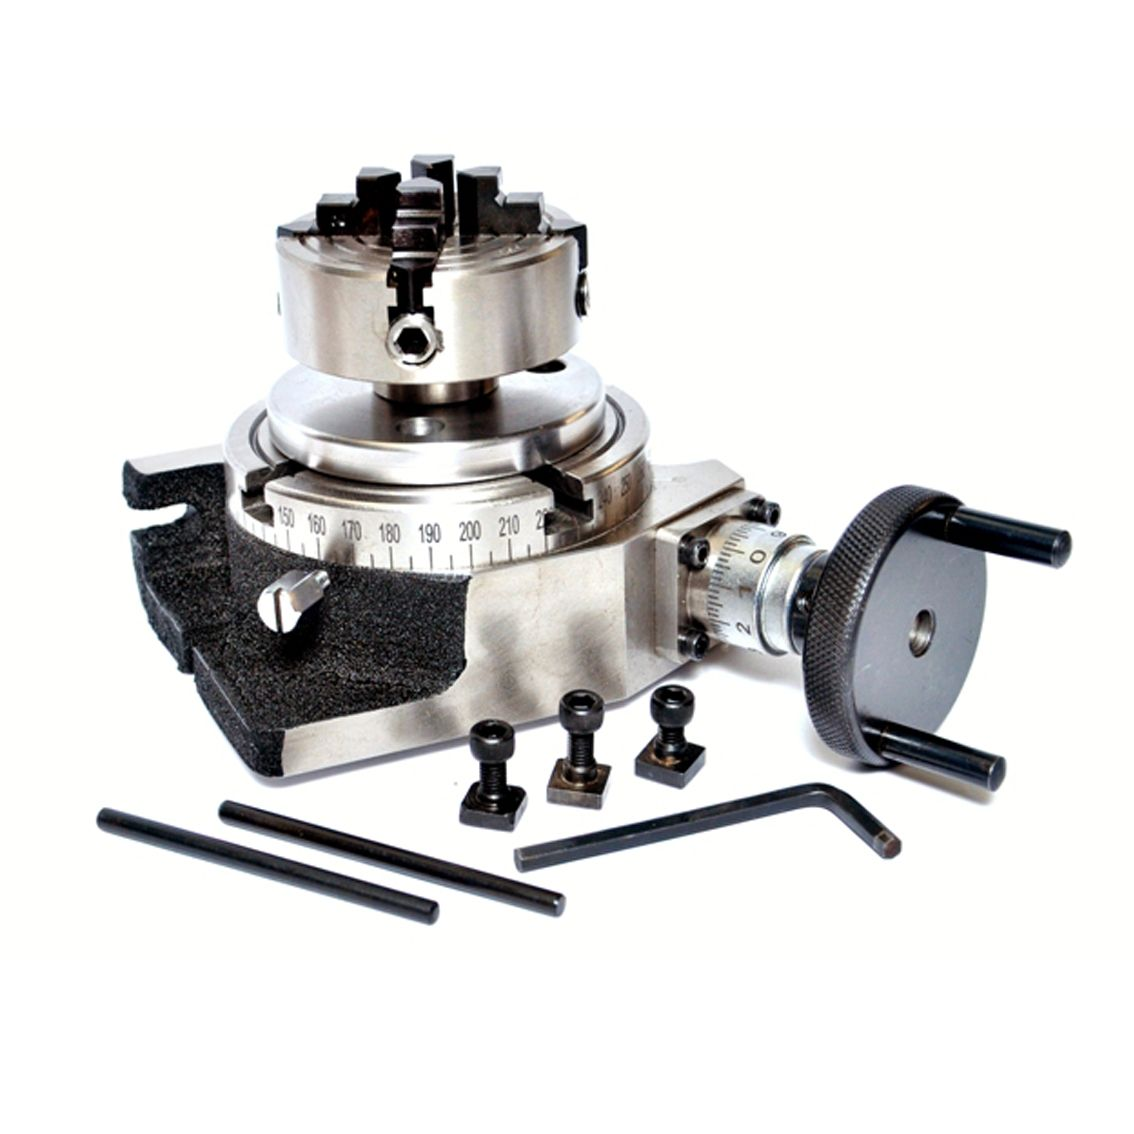 """70 MM INDEPENDENT CHUCK BACKPLATE ROTARY TABLE 3/"""" TILTING"""